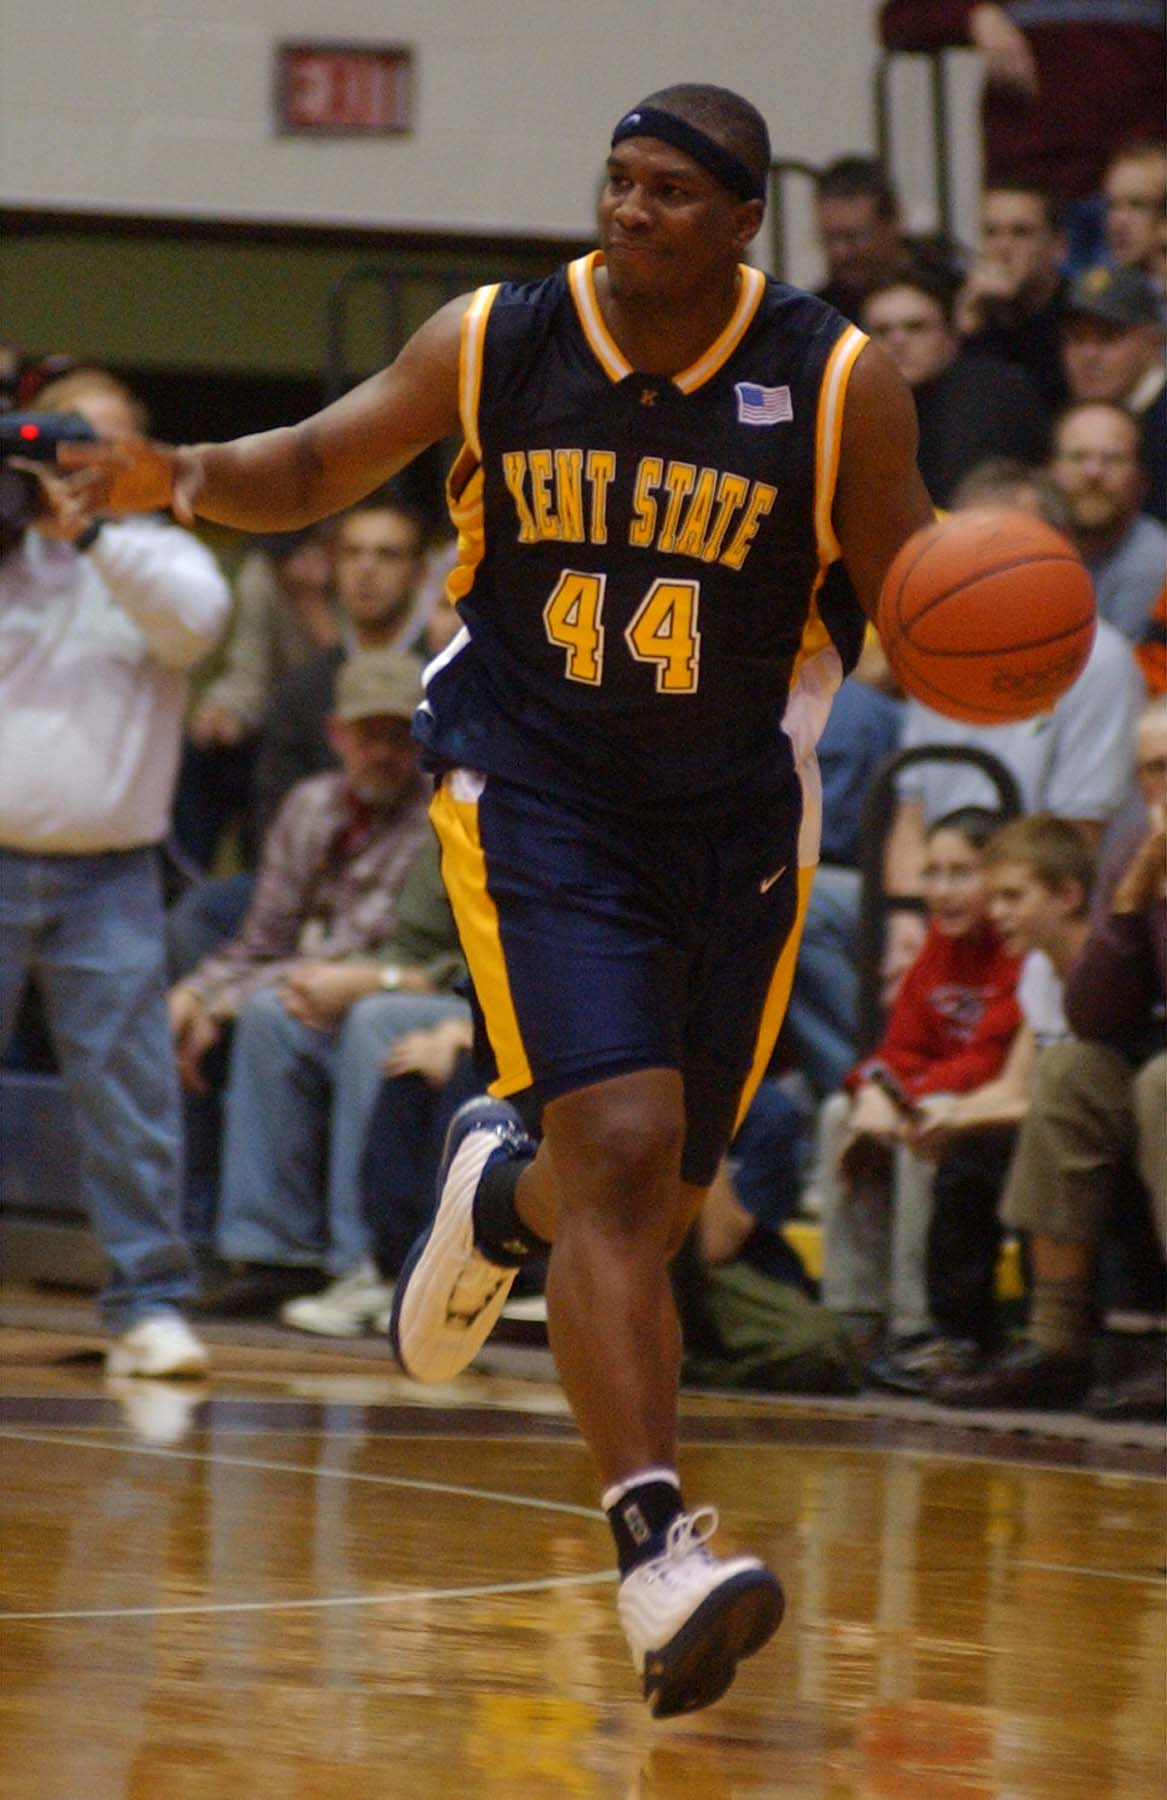 SPORTS BASKETBALL --- Kent State's Antonio Gates (44) dribbles against St. Bonaventure at the Reilly Center in 2nd half action in Olean , N.Y. on 12/21/02. Photo by John Hickey